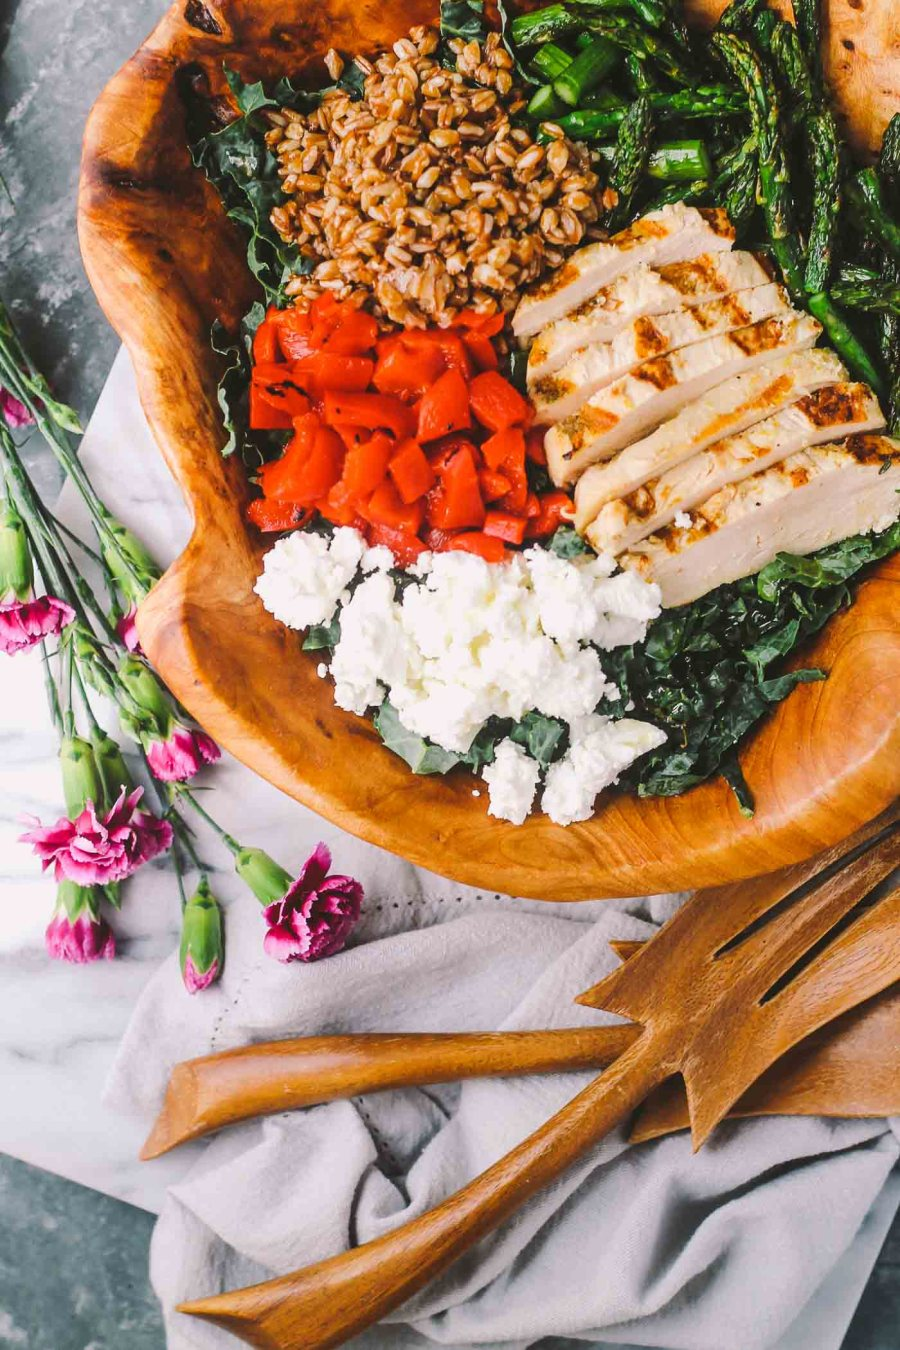 this kale salad will keep you coming back for more! perfect for a simple weeknight al fresco girls' night with a bottle rosé, or meal prep for a week's worth of delicious, healthy lunches at the office! kale & asparagus are paired with lemon thyme chicken, nutty farro, tangy goat cheese, & roasted red pepper. tossed in a lemon thyme vinaigrette. | salad recipe, homemade dressing, meal prep, girls night idea, spring recipe, summer recipe, healthy recipe |